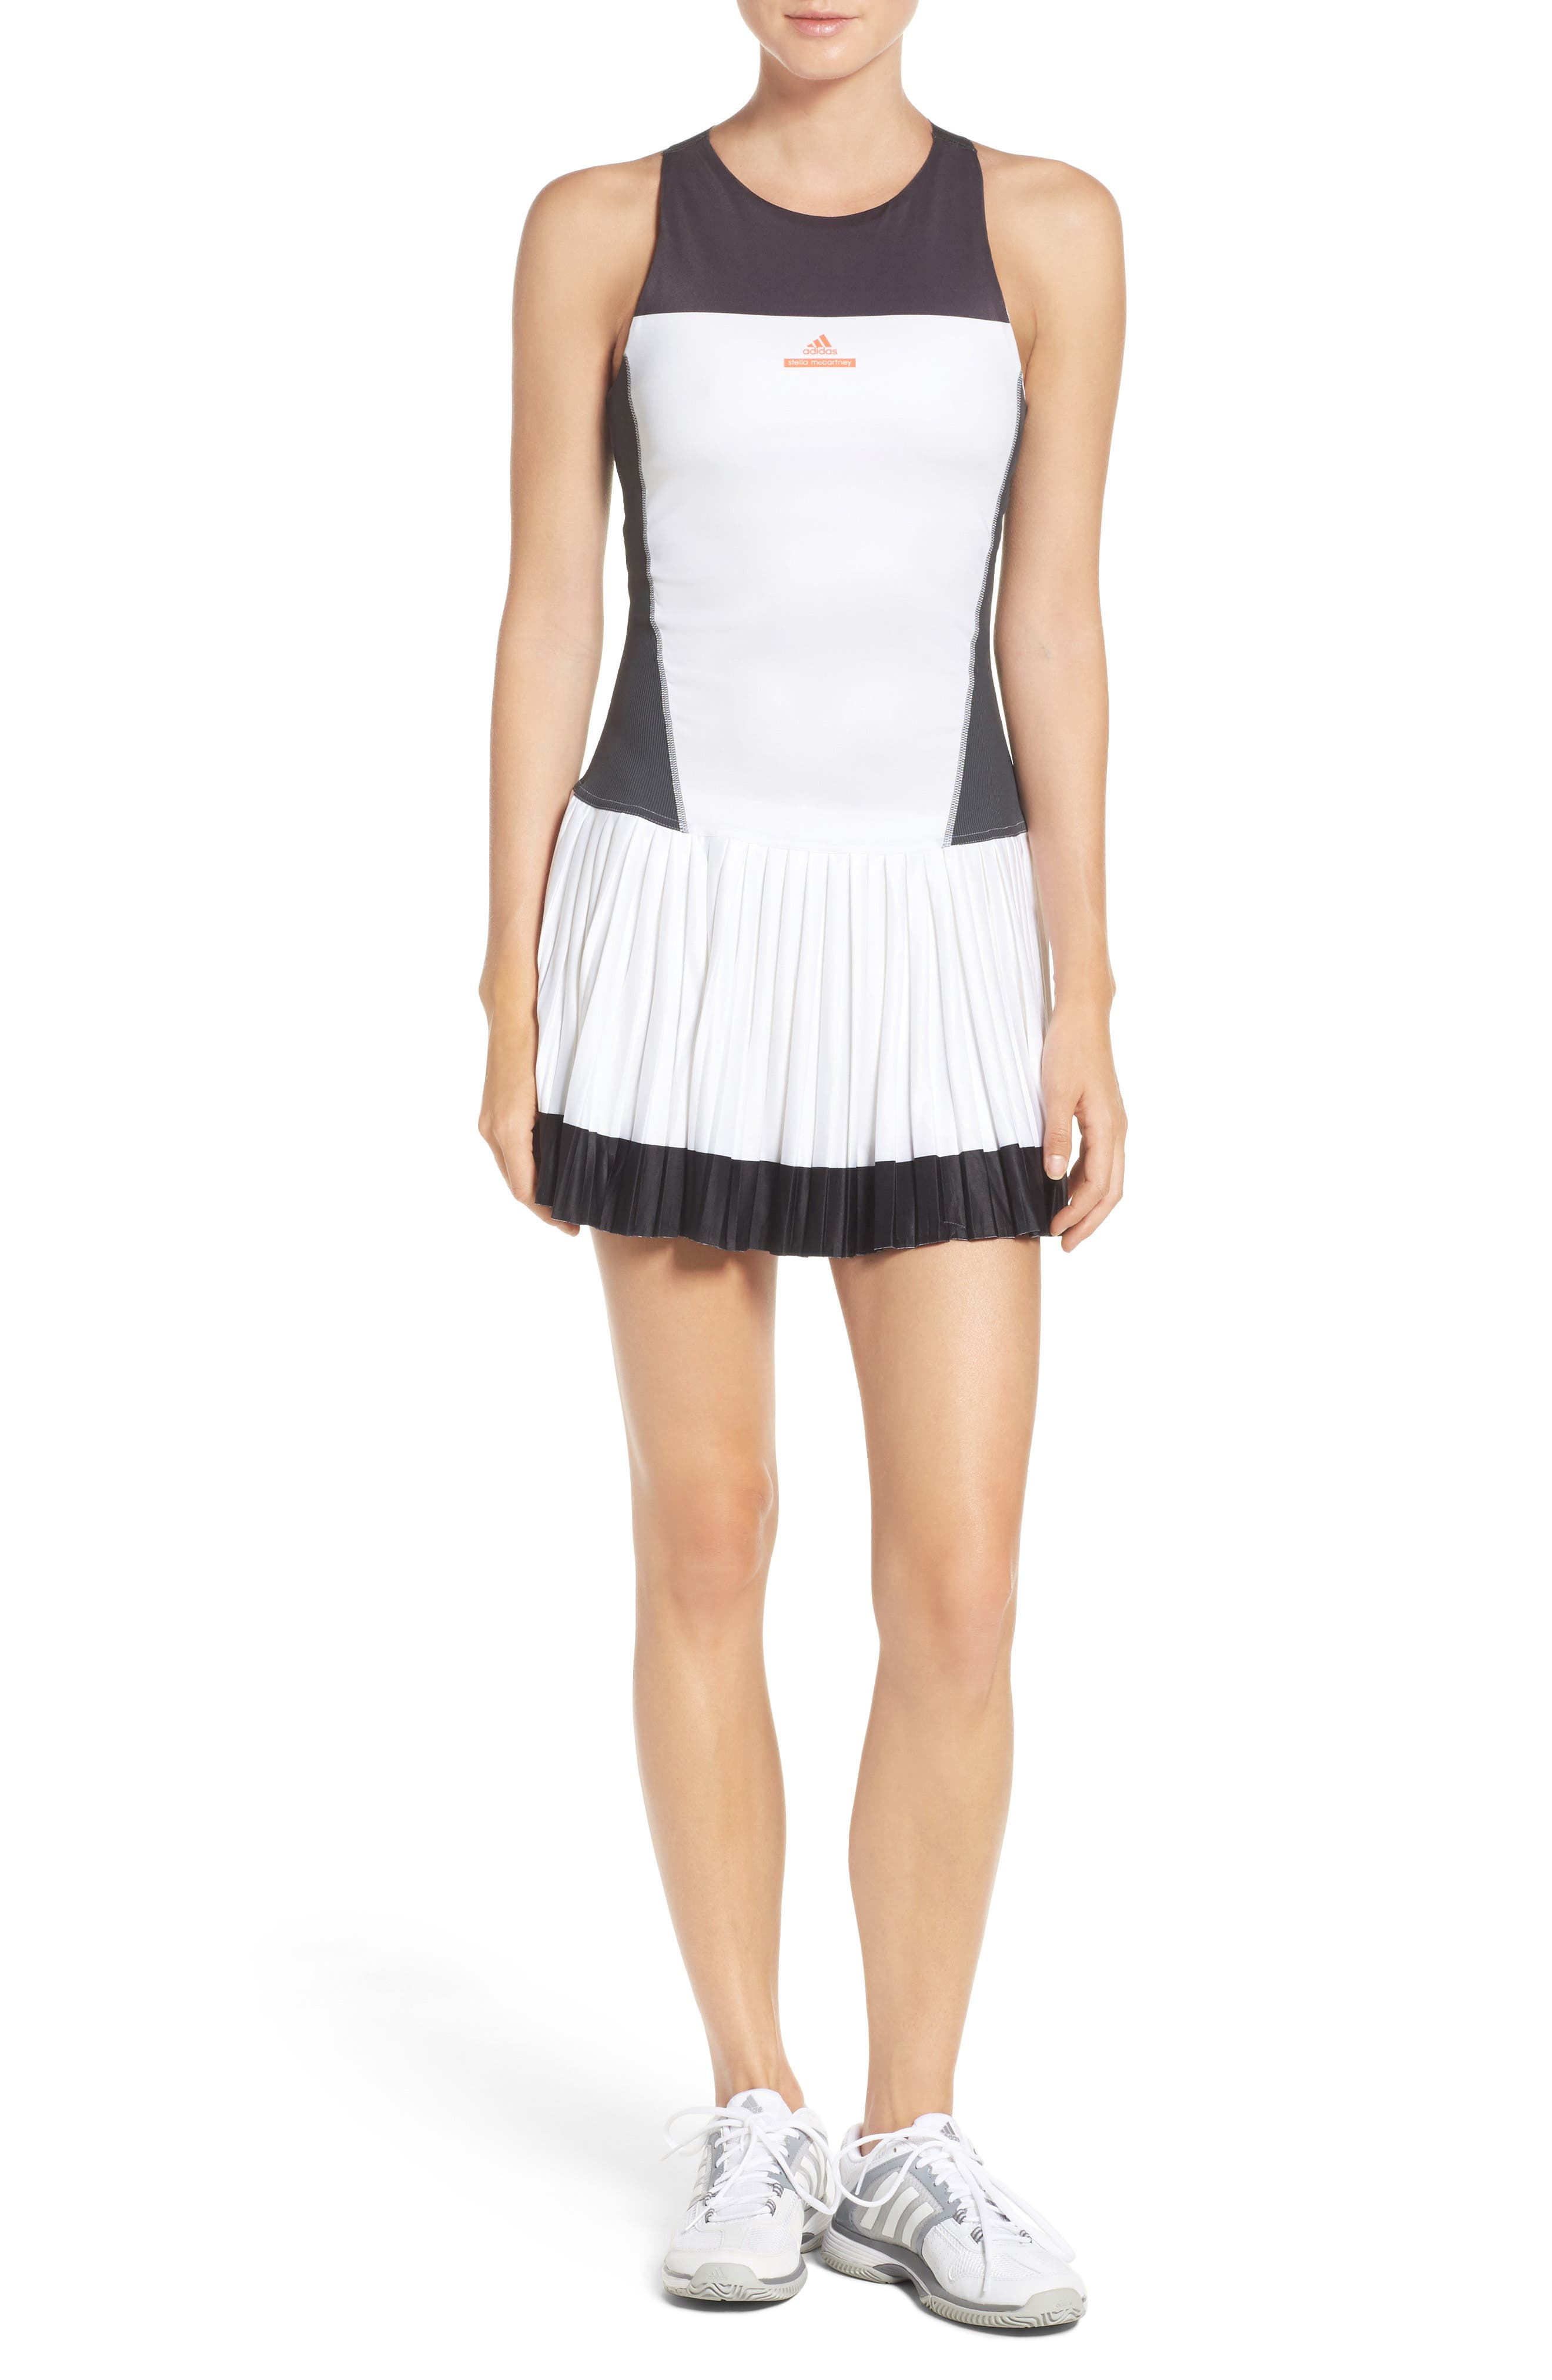 Barricade Tennis Dress & Shorts Set,                         Main,                         color, White/ Solid Grey